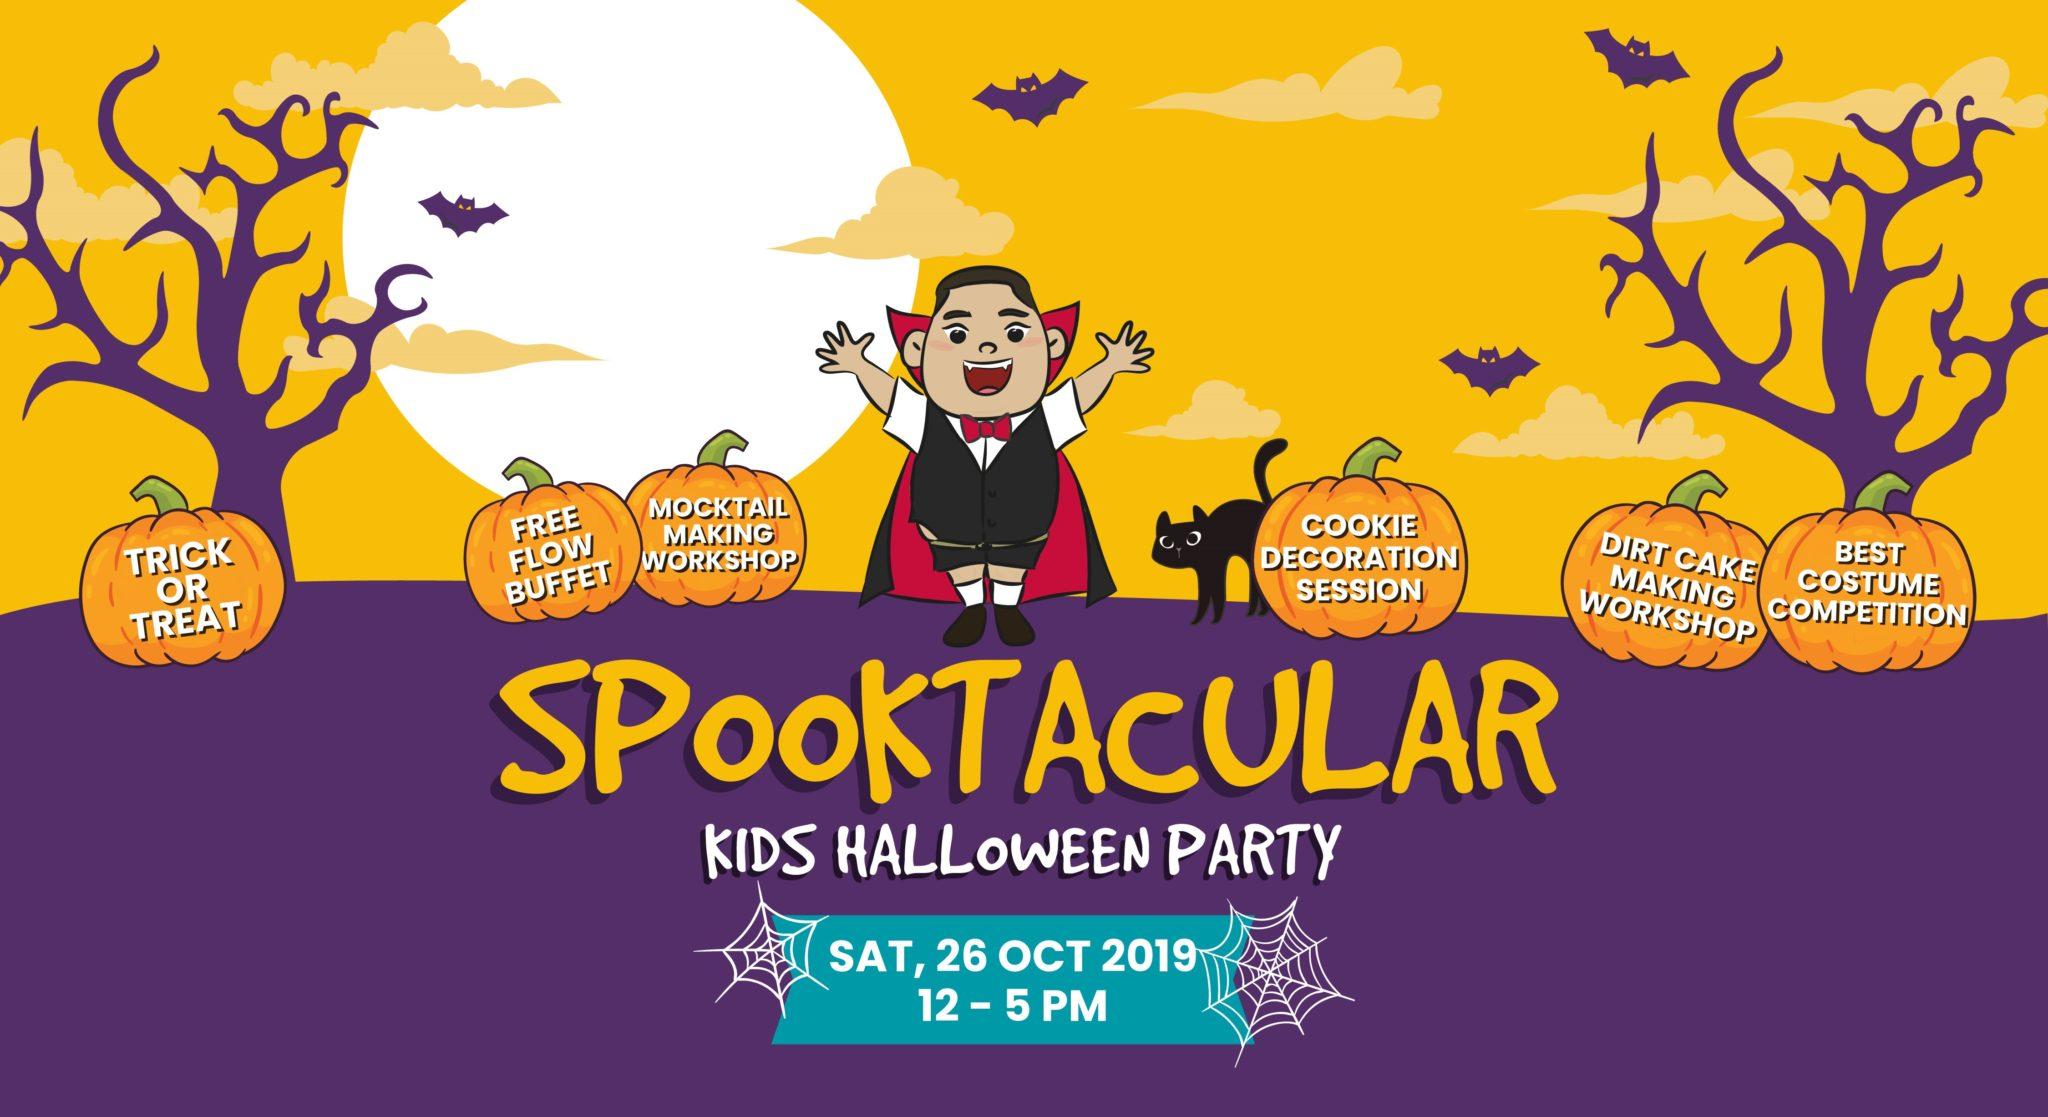 halloween kids party, family activity, kid-friendly asian restaurant at Suntec City, costume party with free flow buffet and DIY workshops at Fat Chap